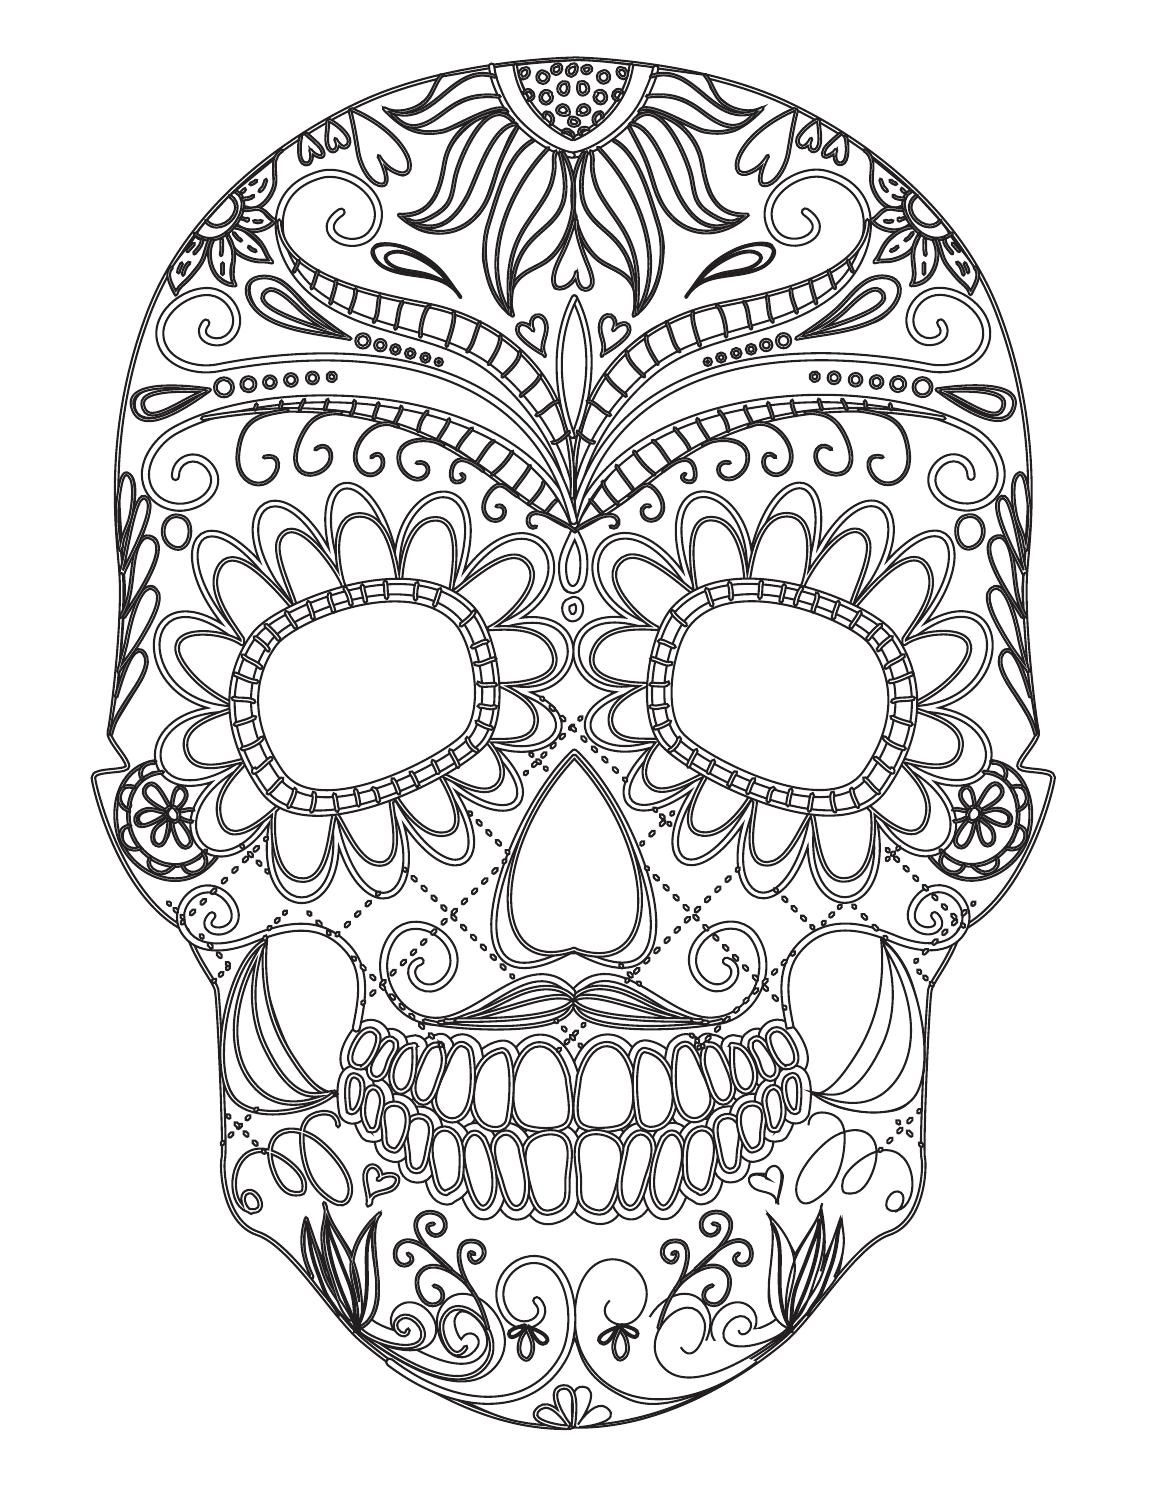 Arteterapie Vysmate Lebky Skull Coloring Pages Love Coloring Pages Coloring Books